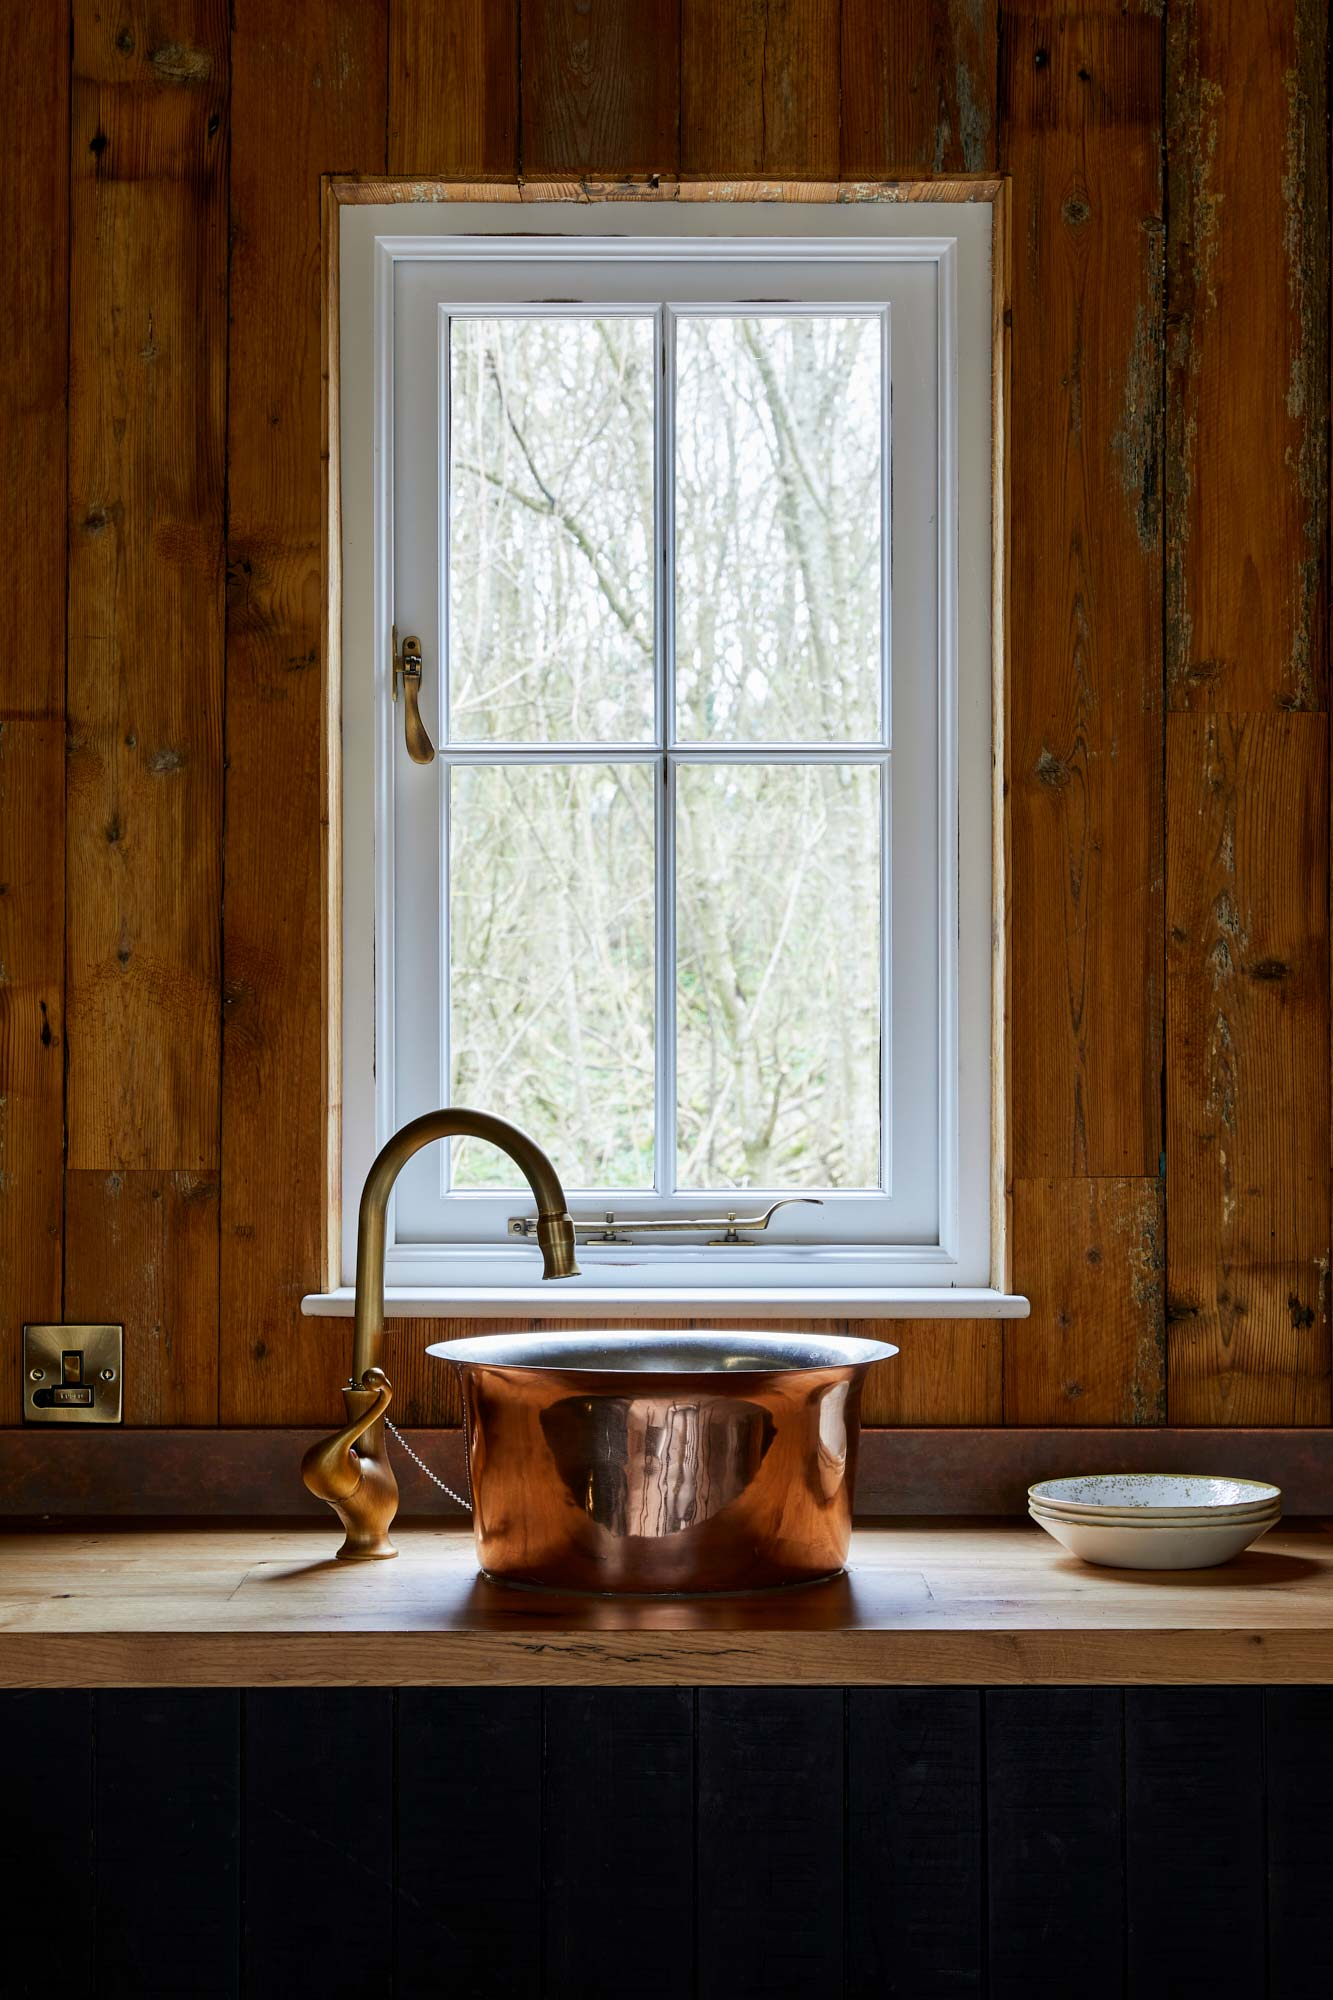 Reclaimed mill pine cladding in treehouse kitchen